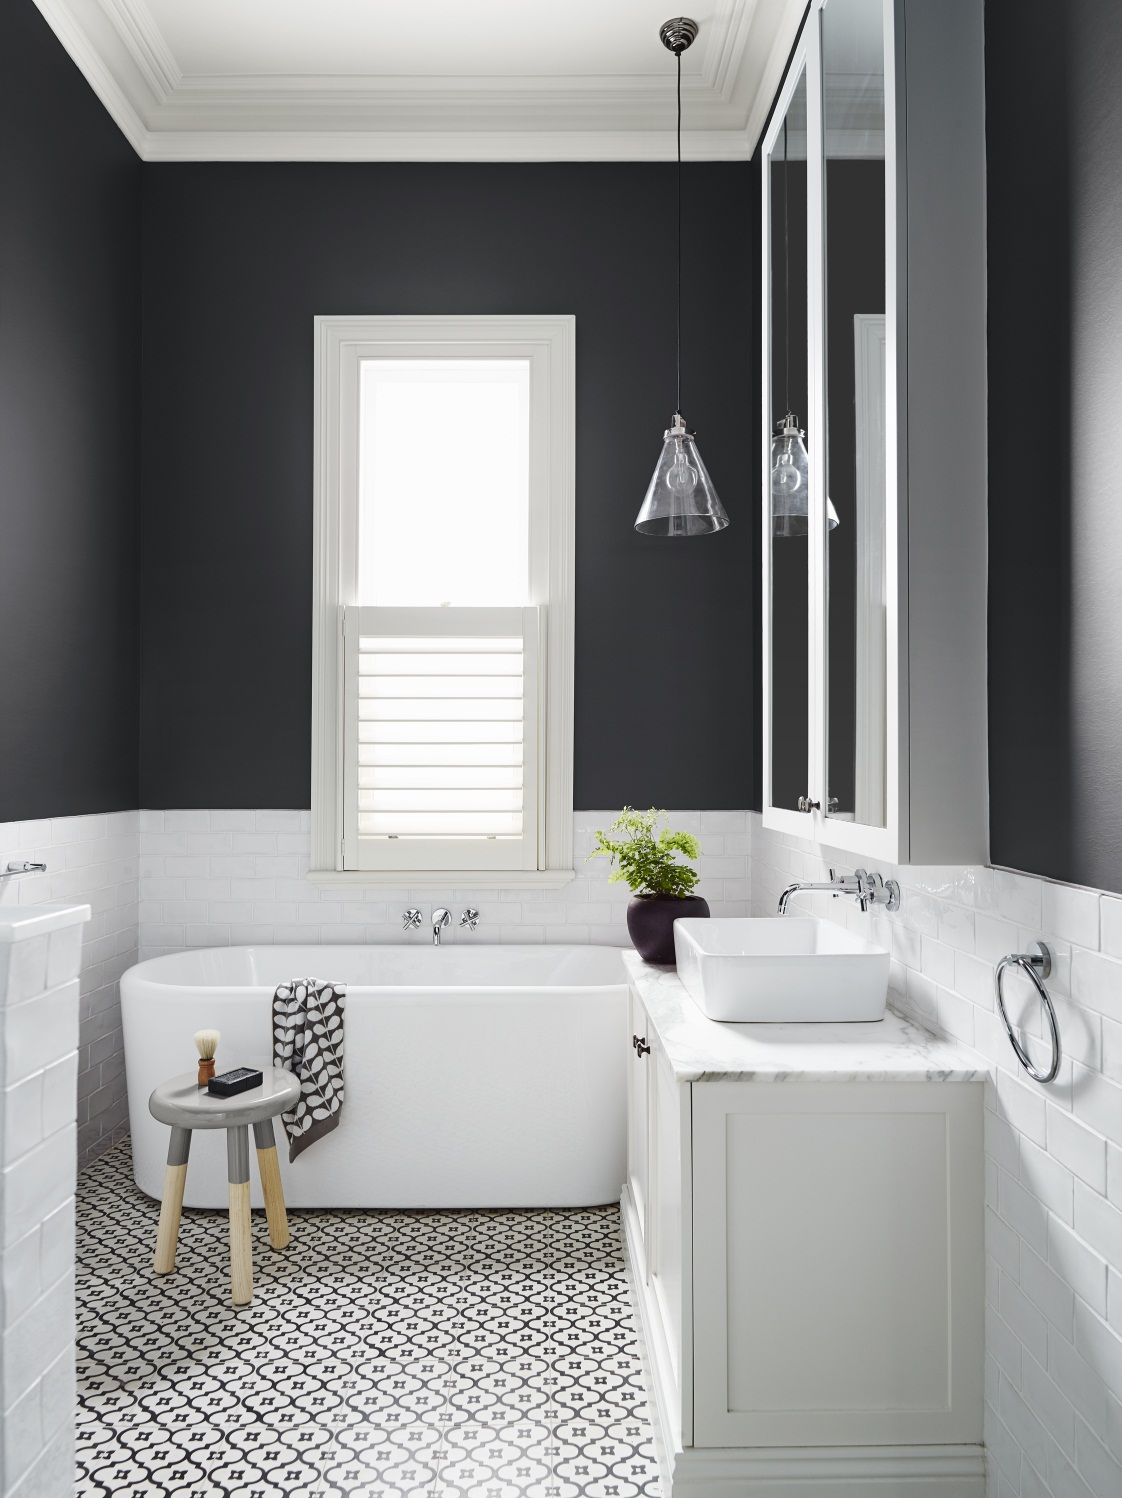 Black Bathrooms How To Successfuly Pull This Off Making Your Home Beautiful